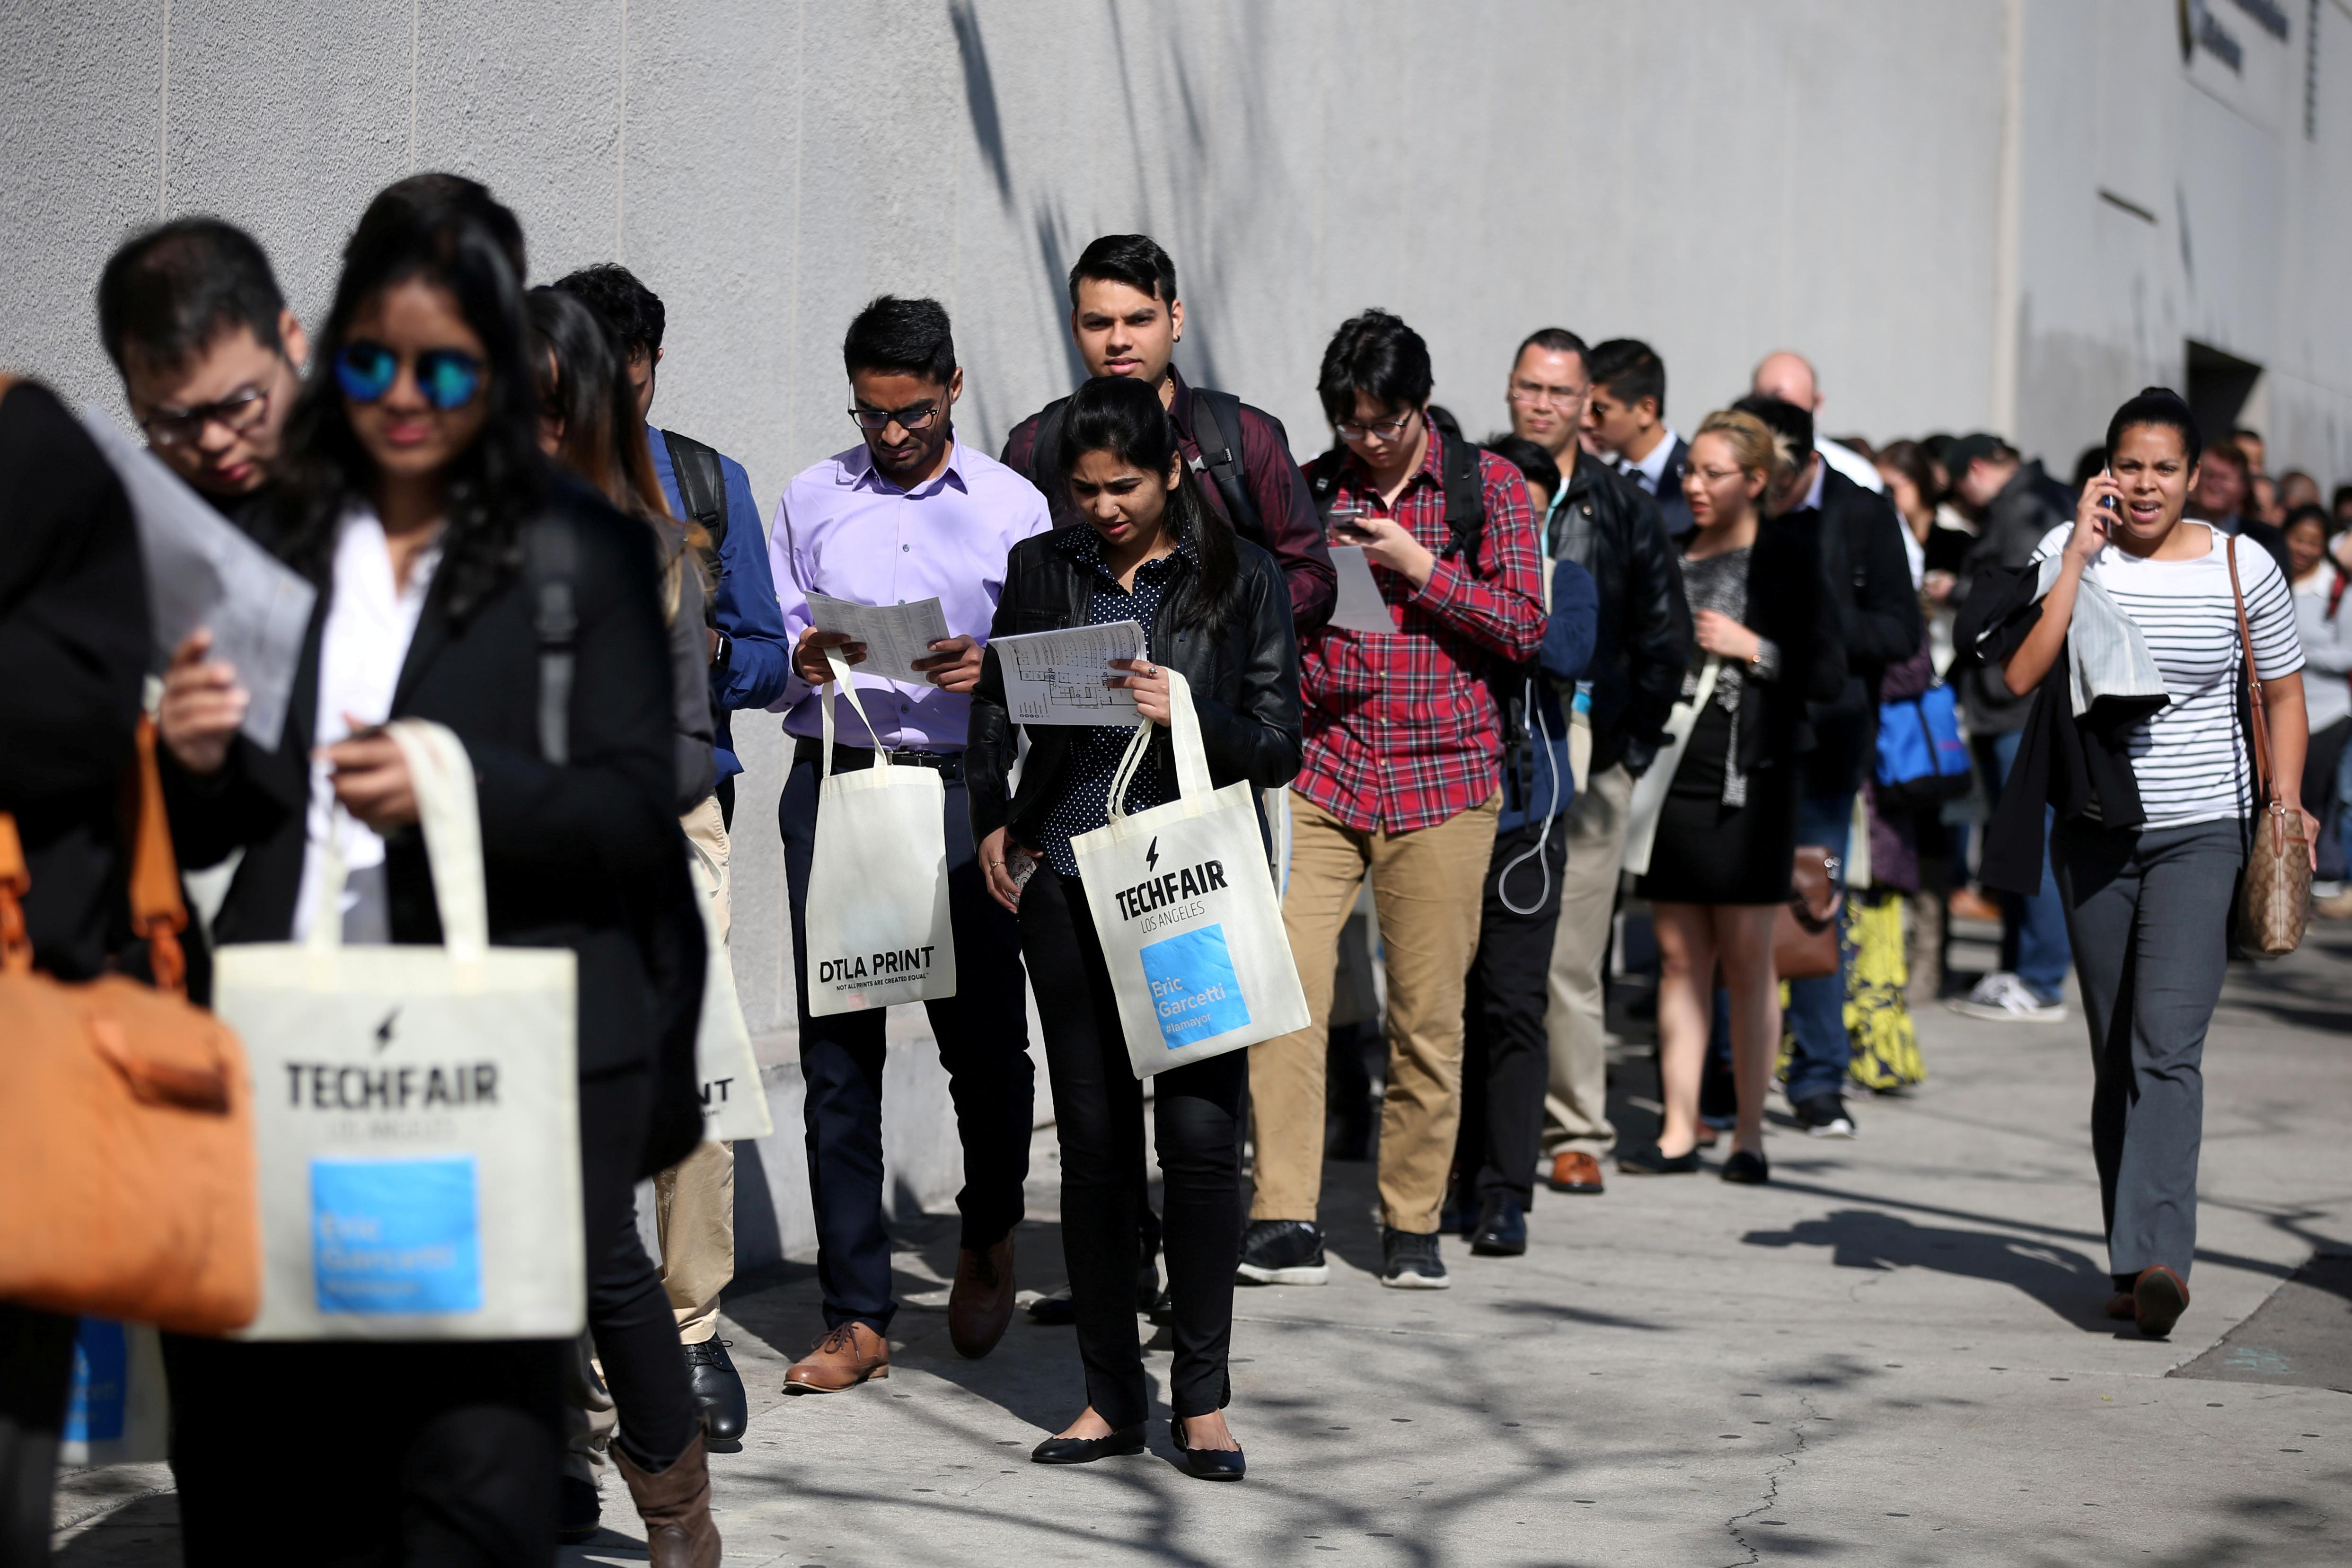 U.S. weekly jobless claims rise more than expected